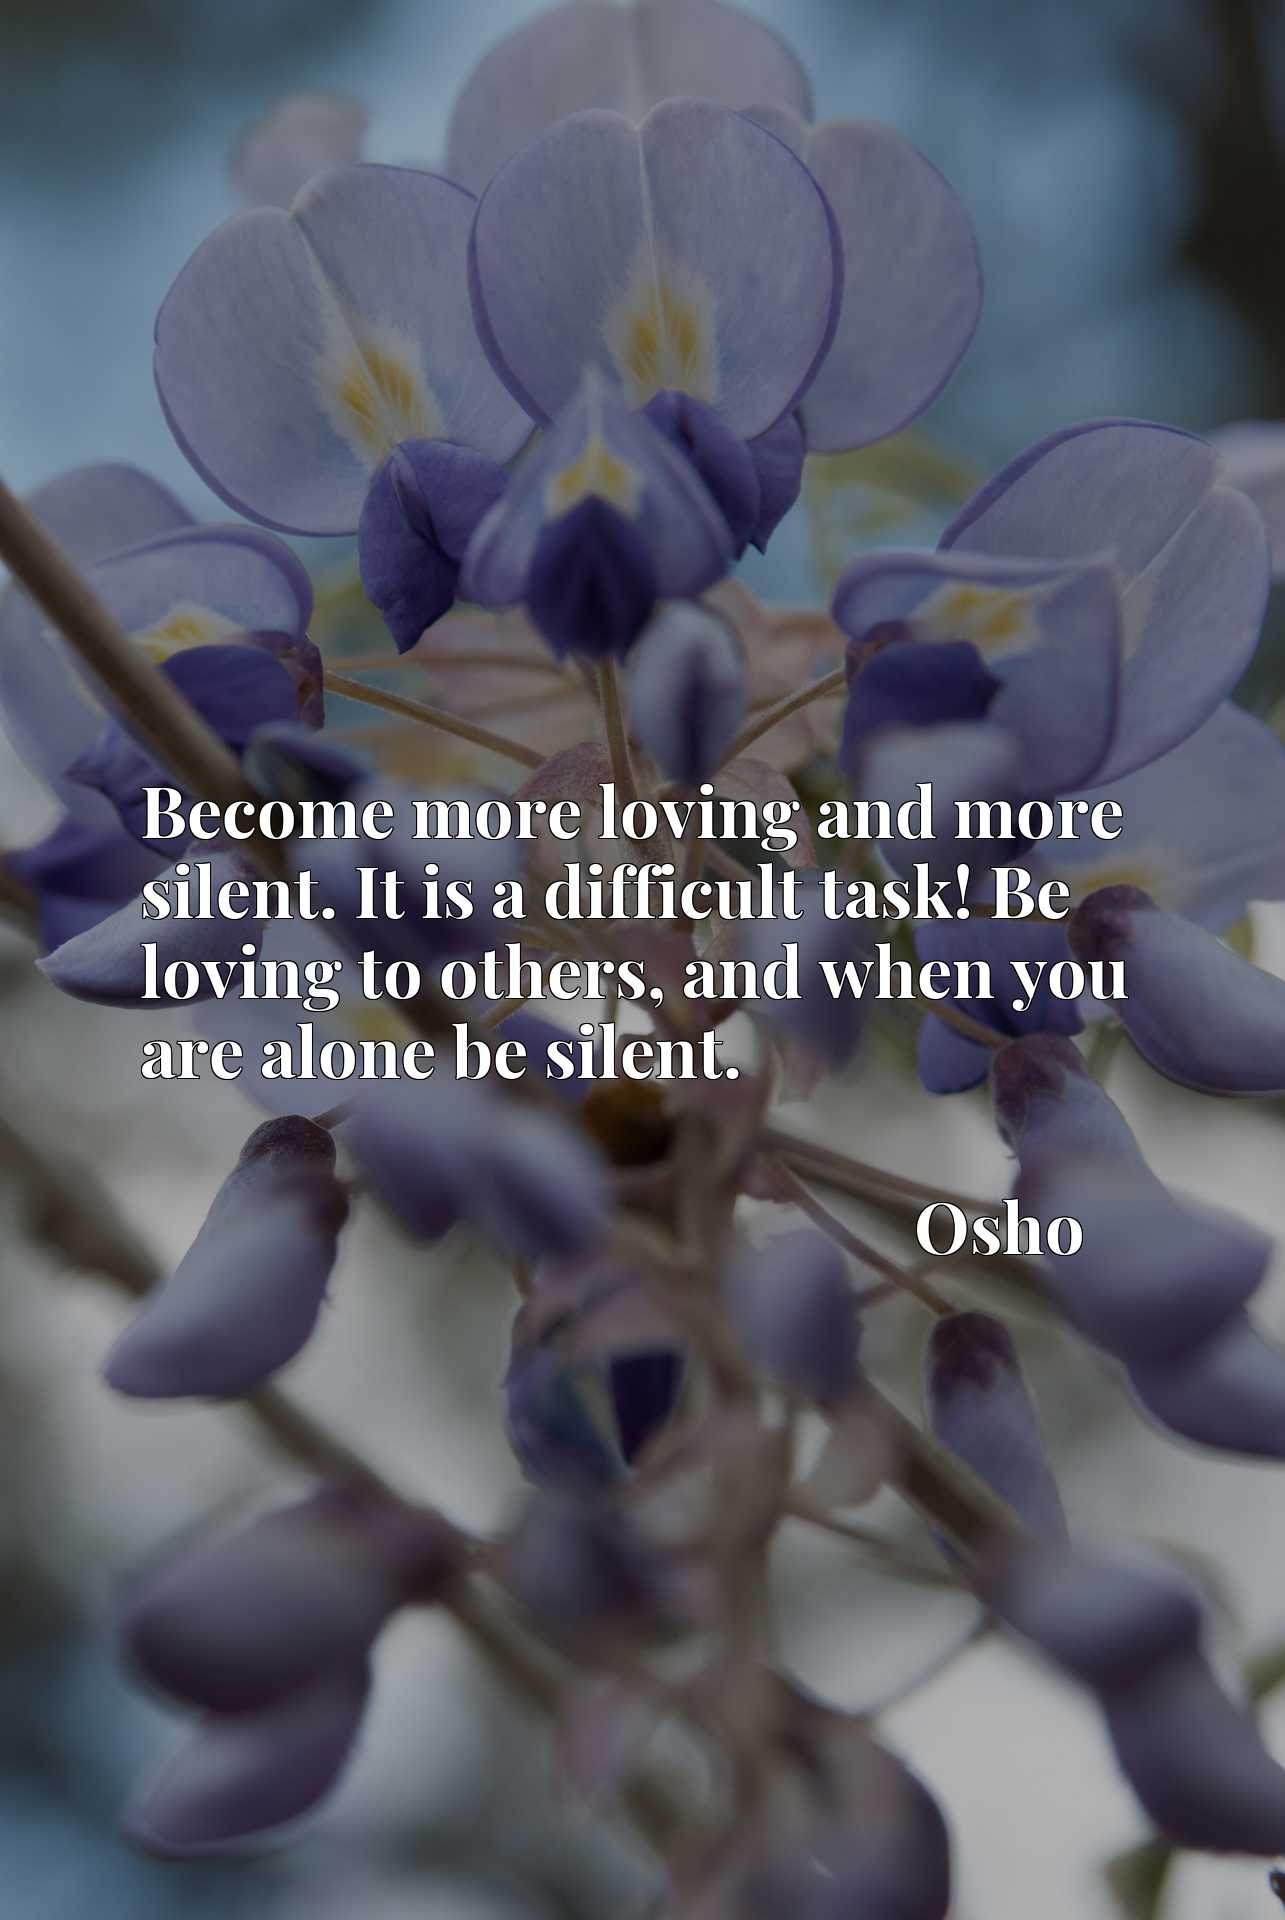 Become more loving and more silent. It is a difficult task! Be loving to others, and when you are alone be silent.